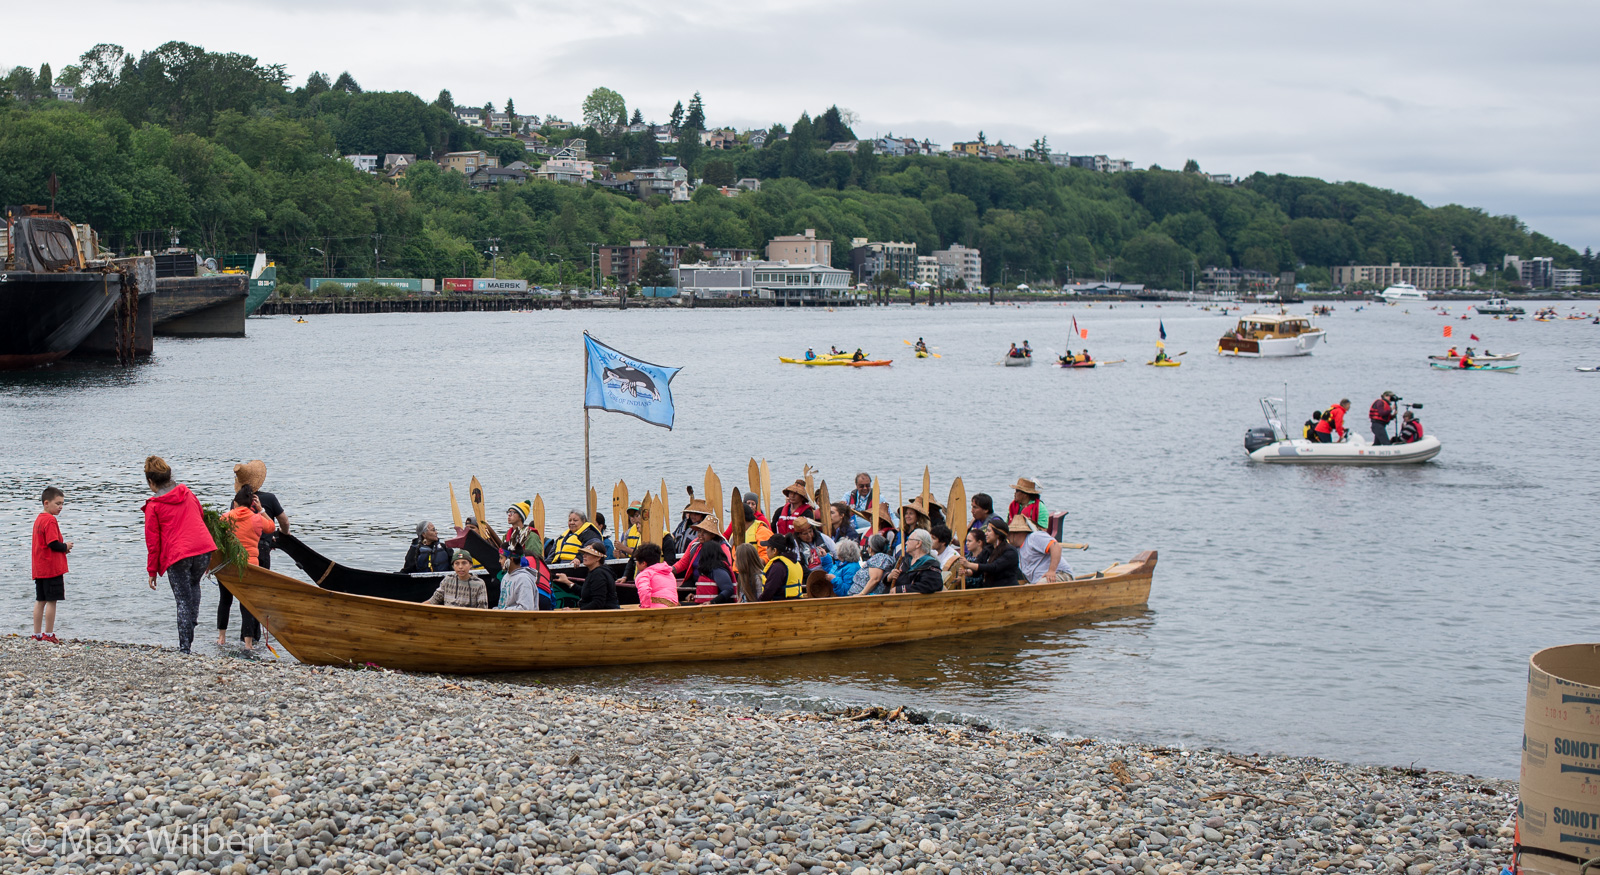 Members of the Duwamish, Lummi, and other local nations in beautiful traditional canoes.